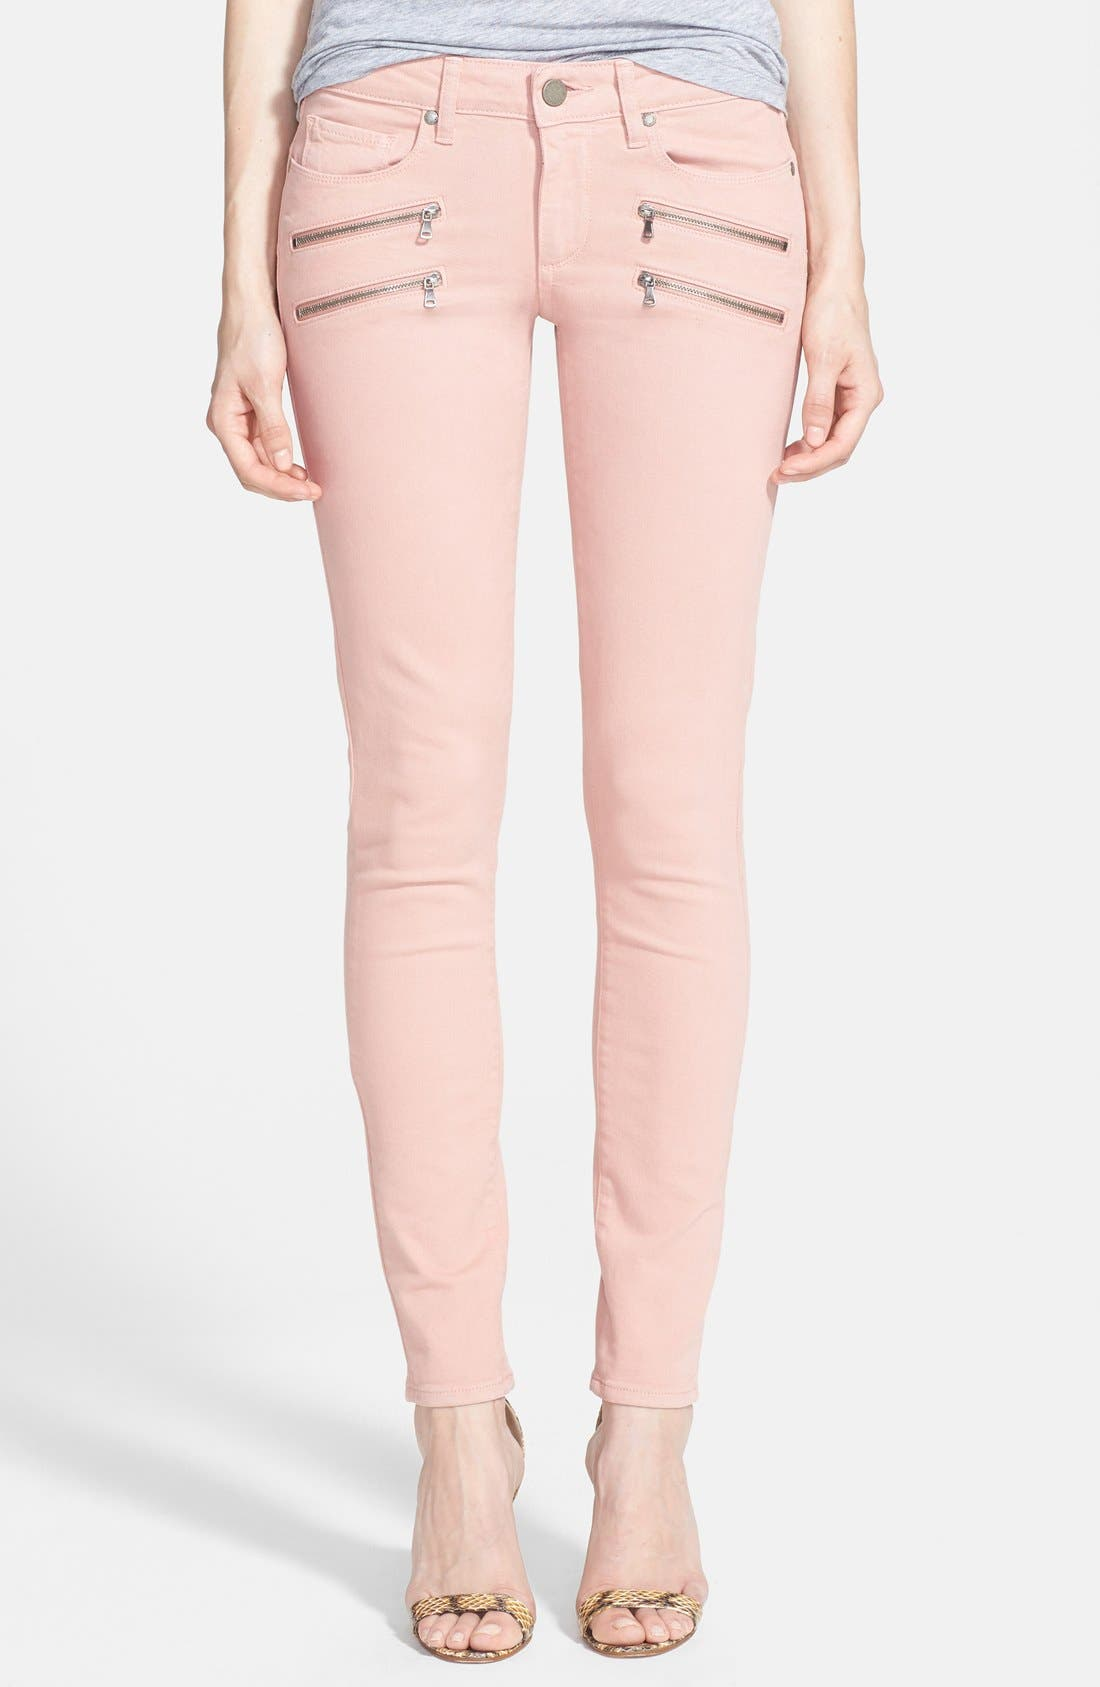 Alternate Image 1 Selected - Paige Denim 'Edgemont' Ultra Skinny Jeans (Ballet Pink)